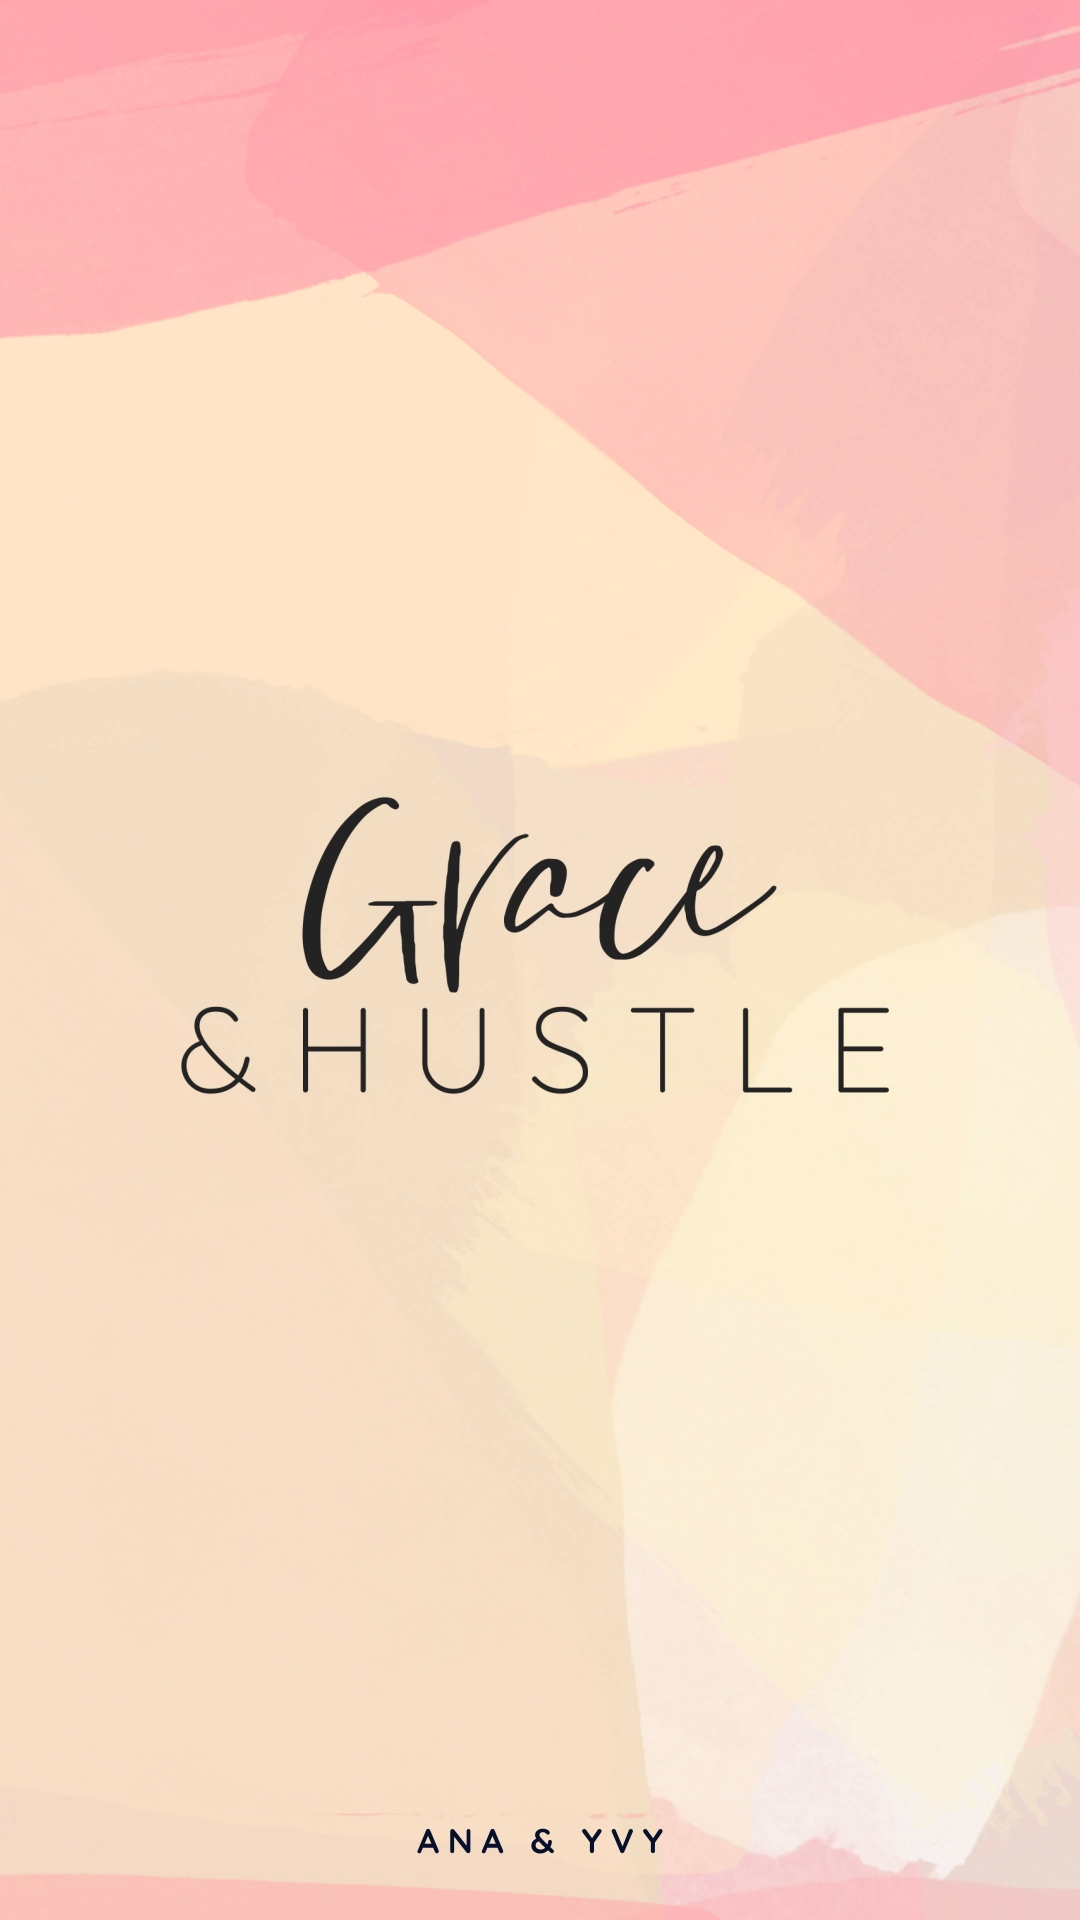 Let's celebrate our very first  personalized product on our #etsy shop!  Make your feed shine golden and look unique 🌟 We create your animated instagram story & feed post with your branding colors and your quote.  #grafikdesign #instagram #template #socialmedia #feeddesign #instagramstories #instagramtemplate #storyhighlights #pastelfeed #motivationquote #girlbossquote #hustlequotes #watercolorquote #instagrammarketing